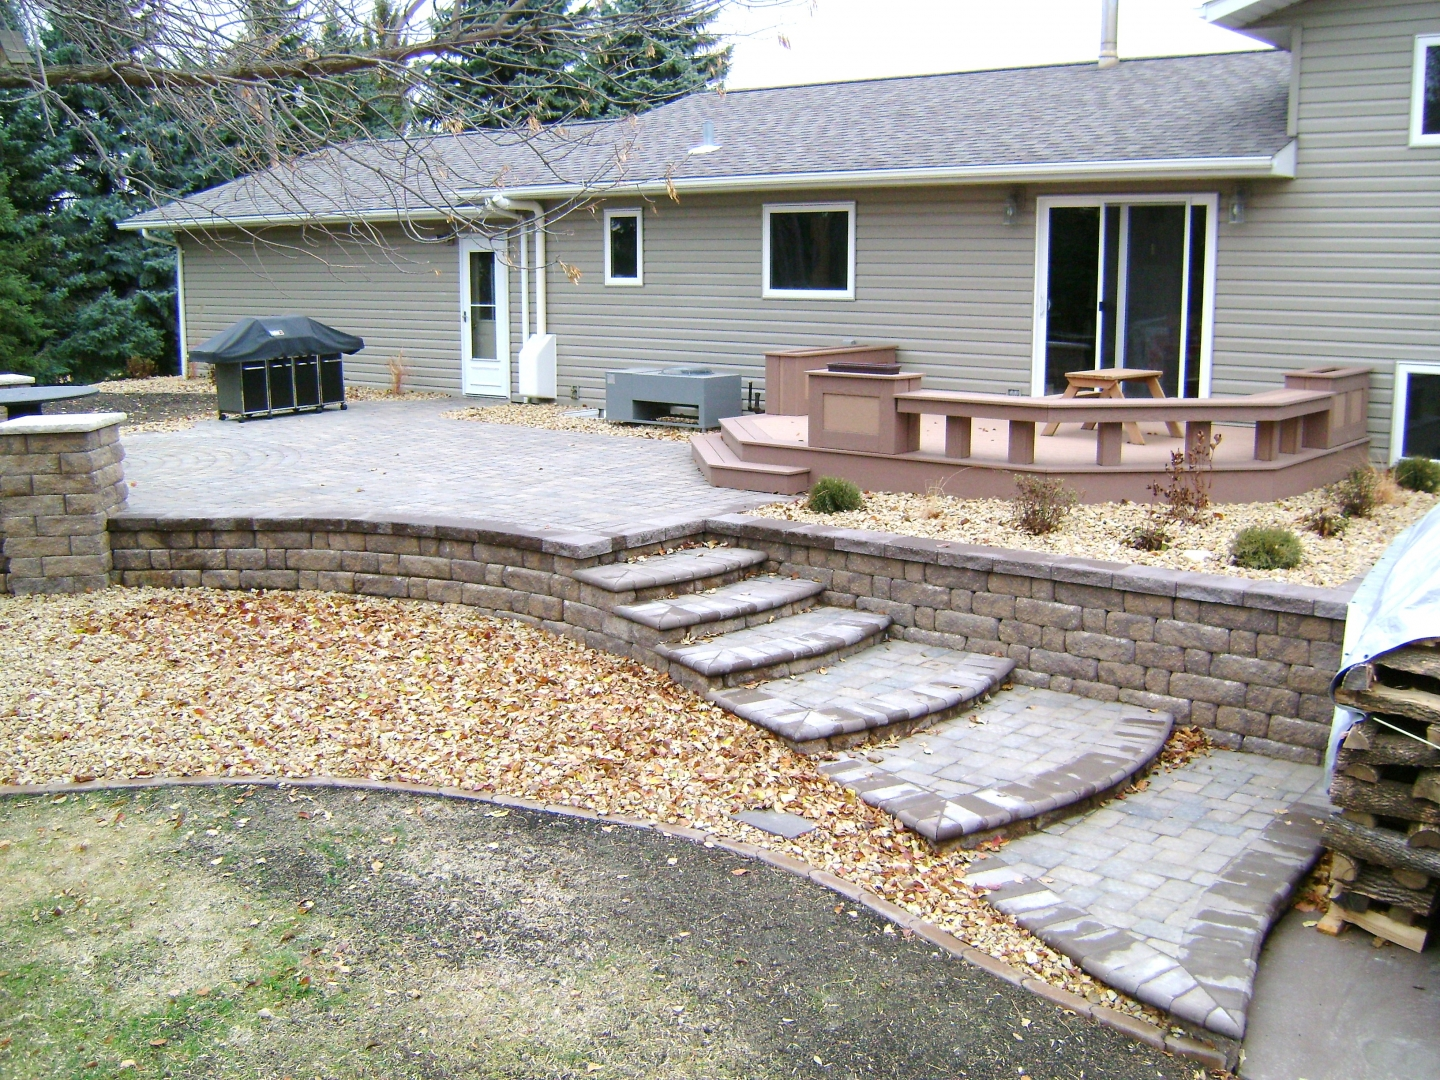 Backyard Fire Pit with Seat Wall and Paver Patio - Oasis ... on Raised Concrete Patio Ideas id=75397